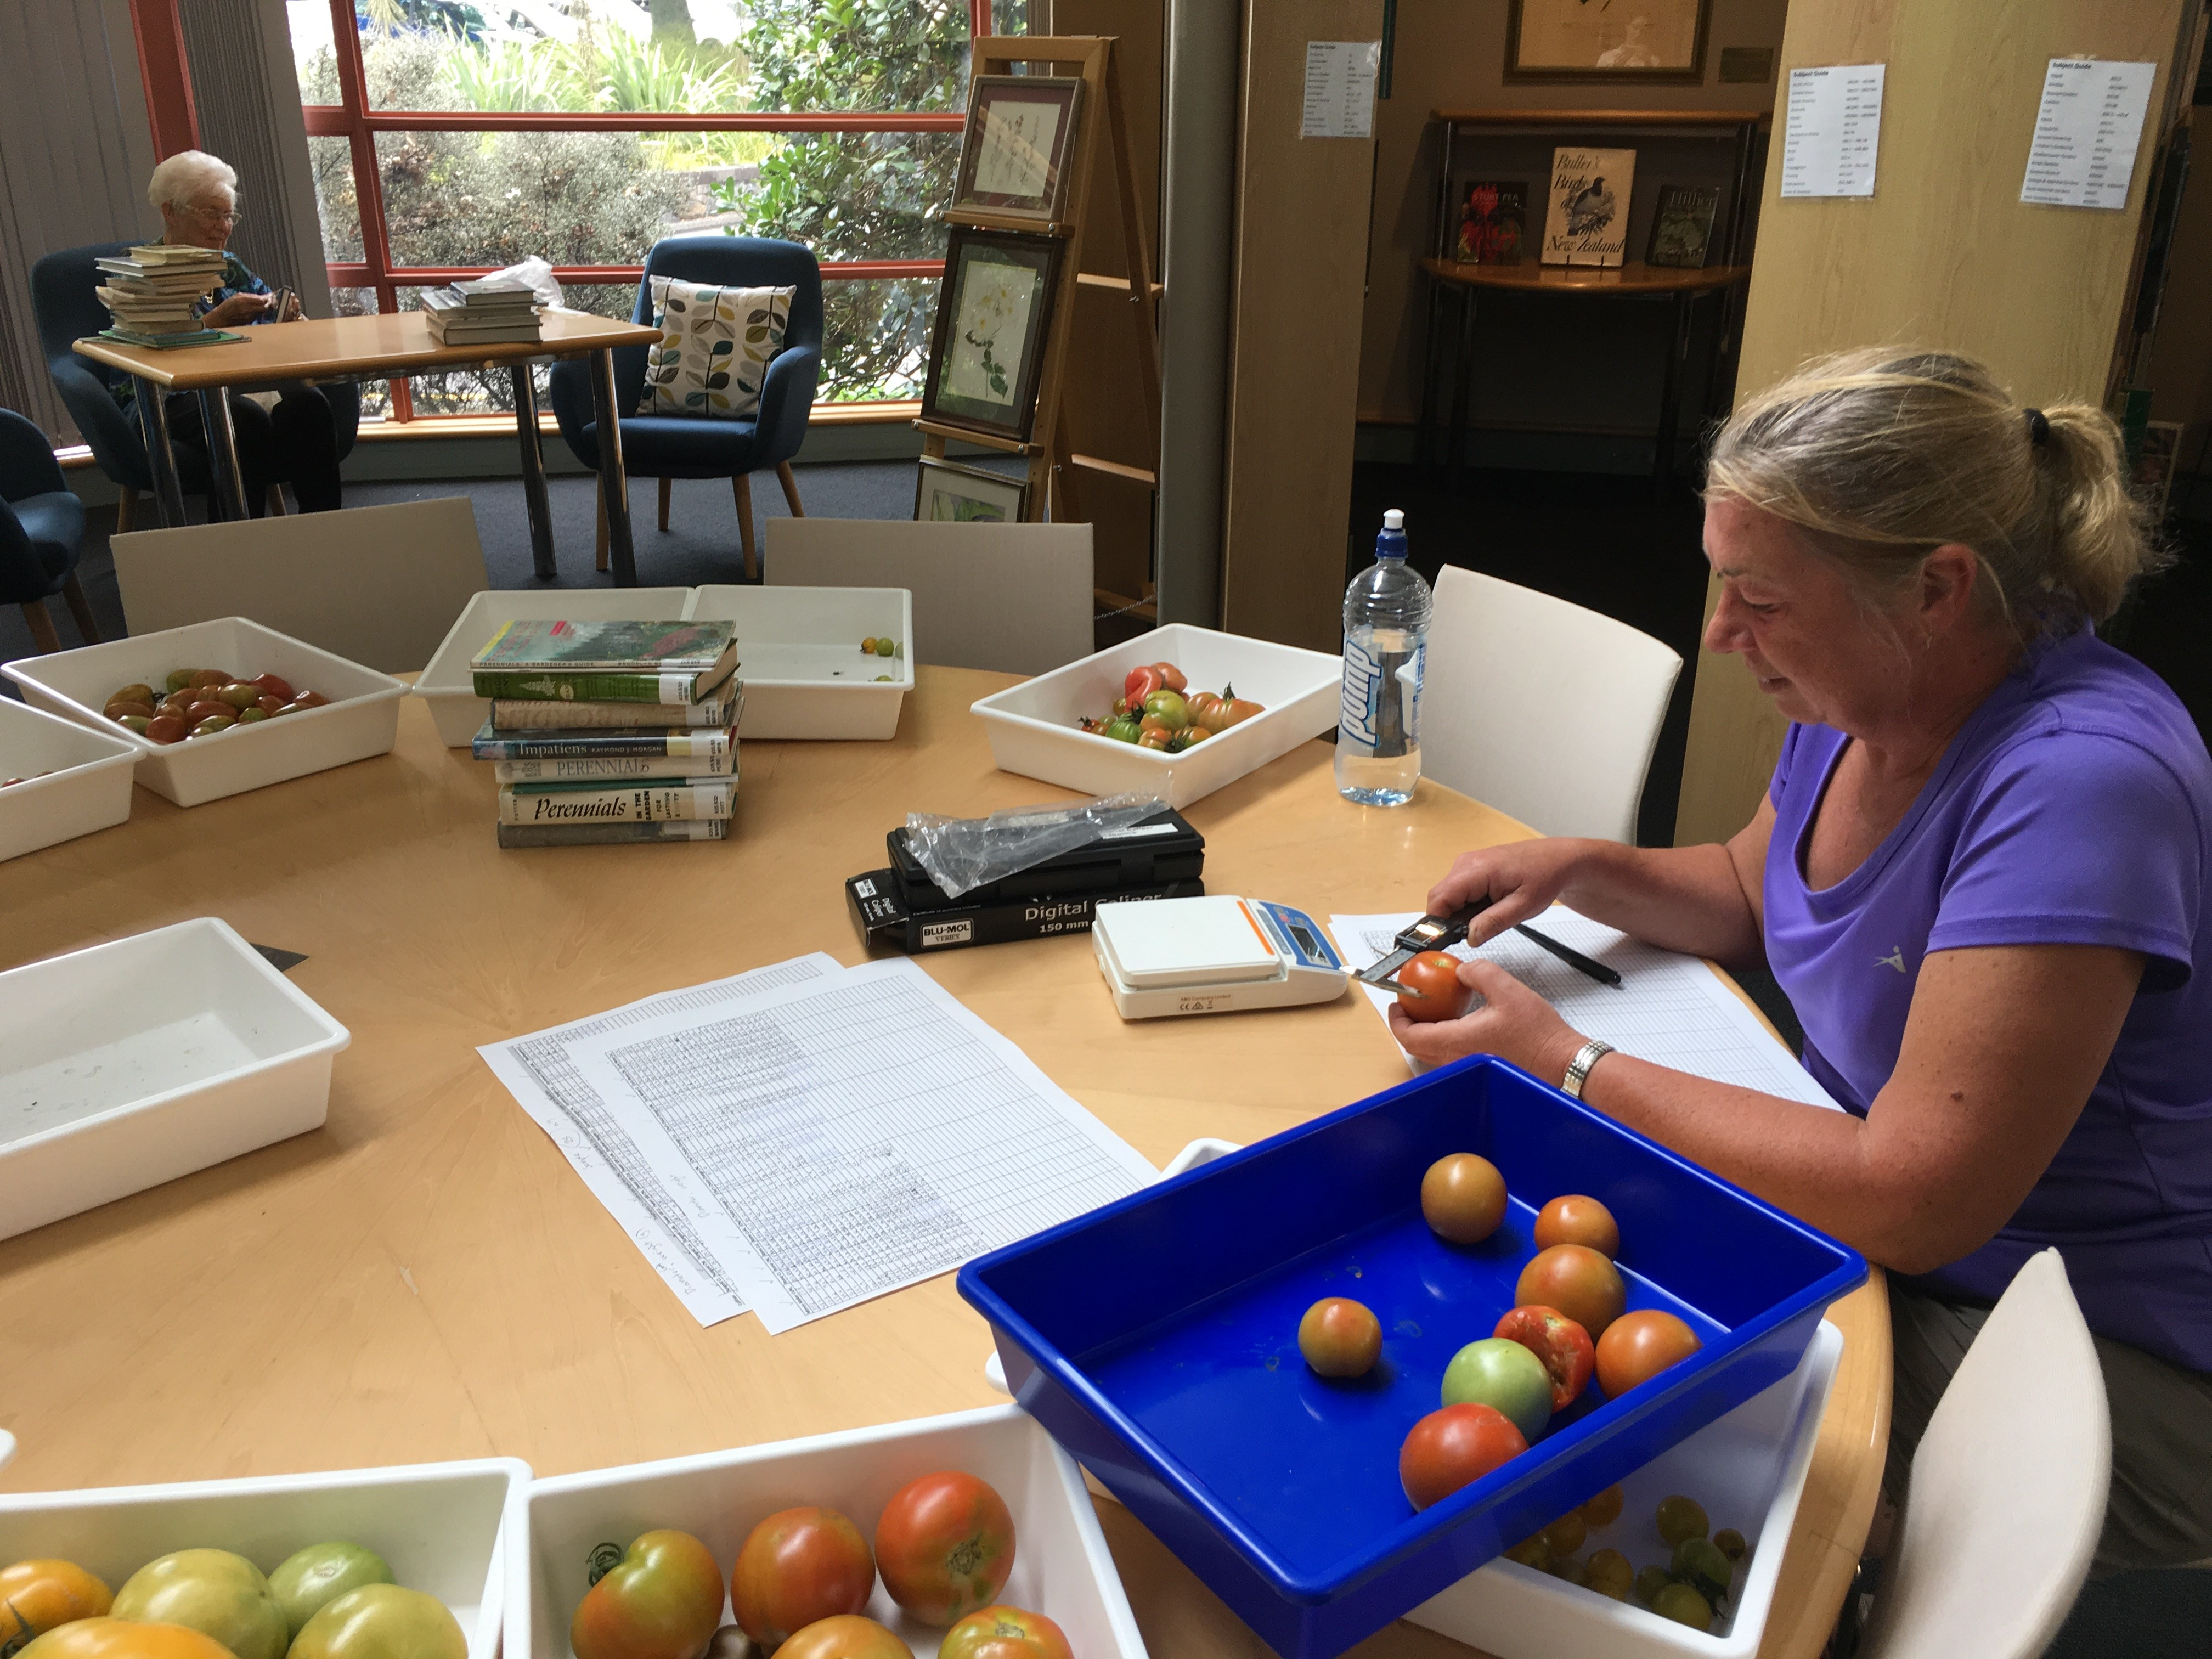 MIT student, Julie, measuring tomatoes